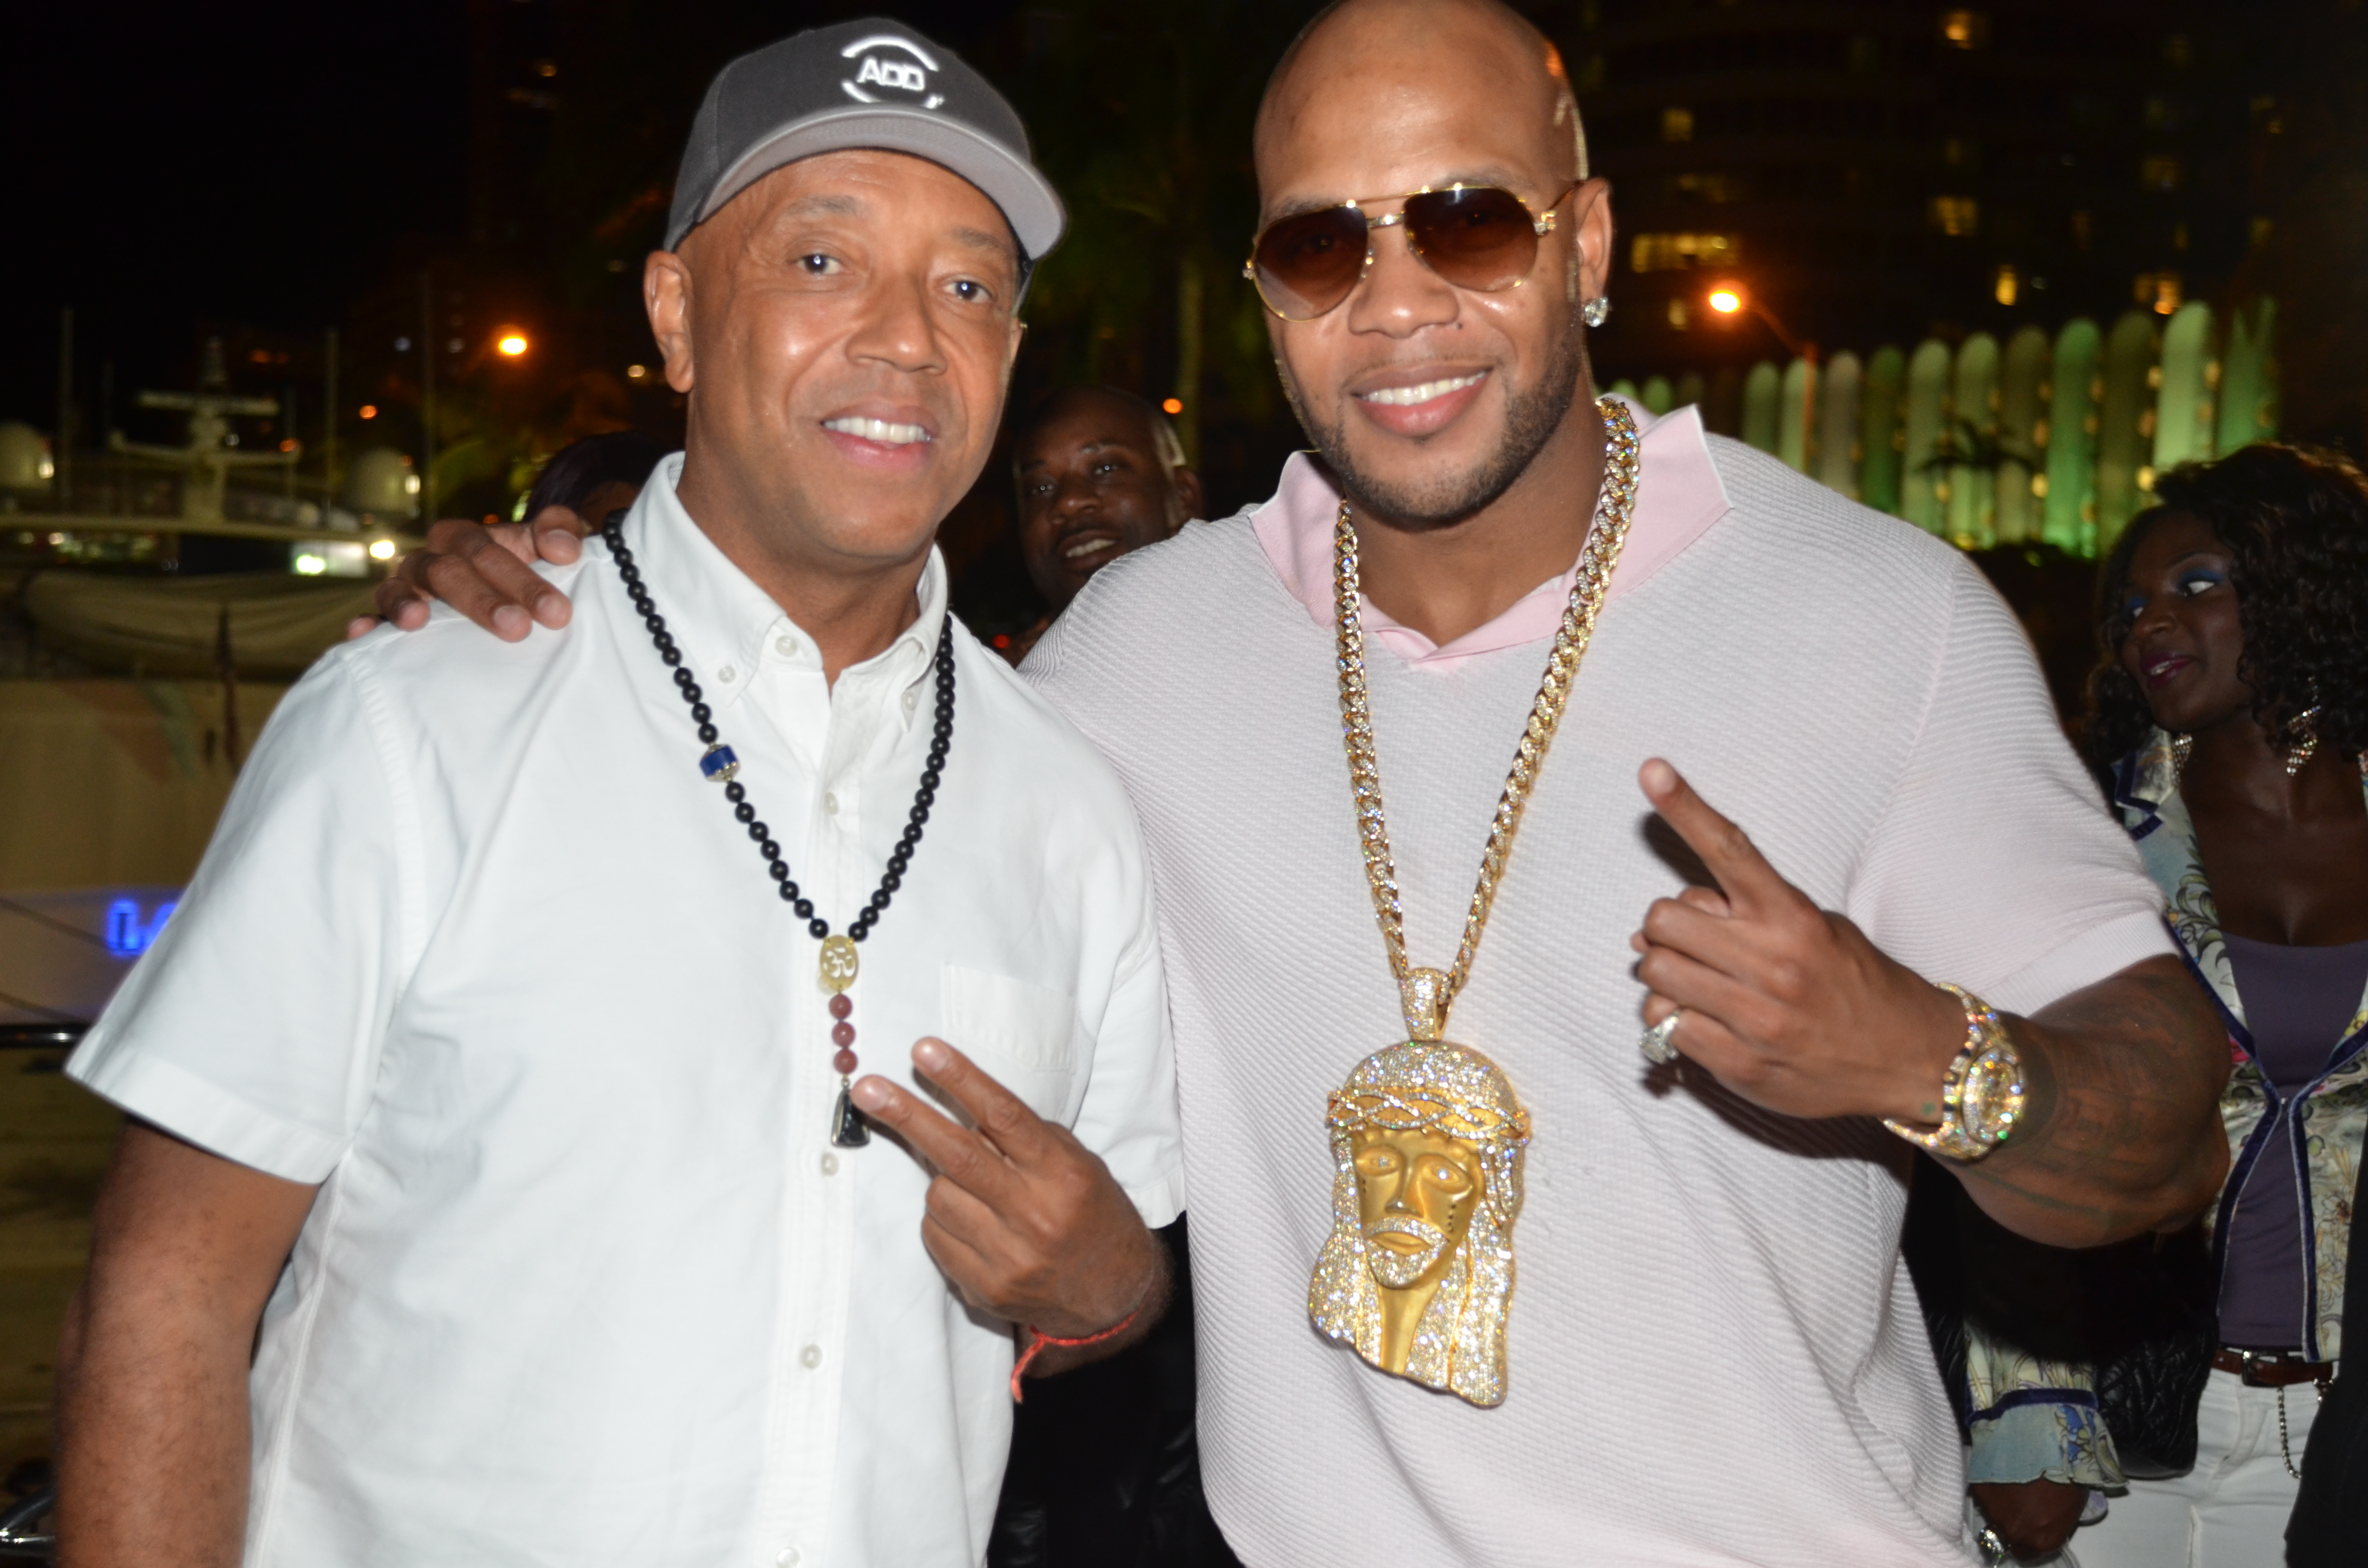 Russell Simmons and Flo Rida at Revolt Music Conference Yacht Party